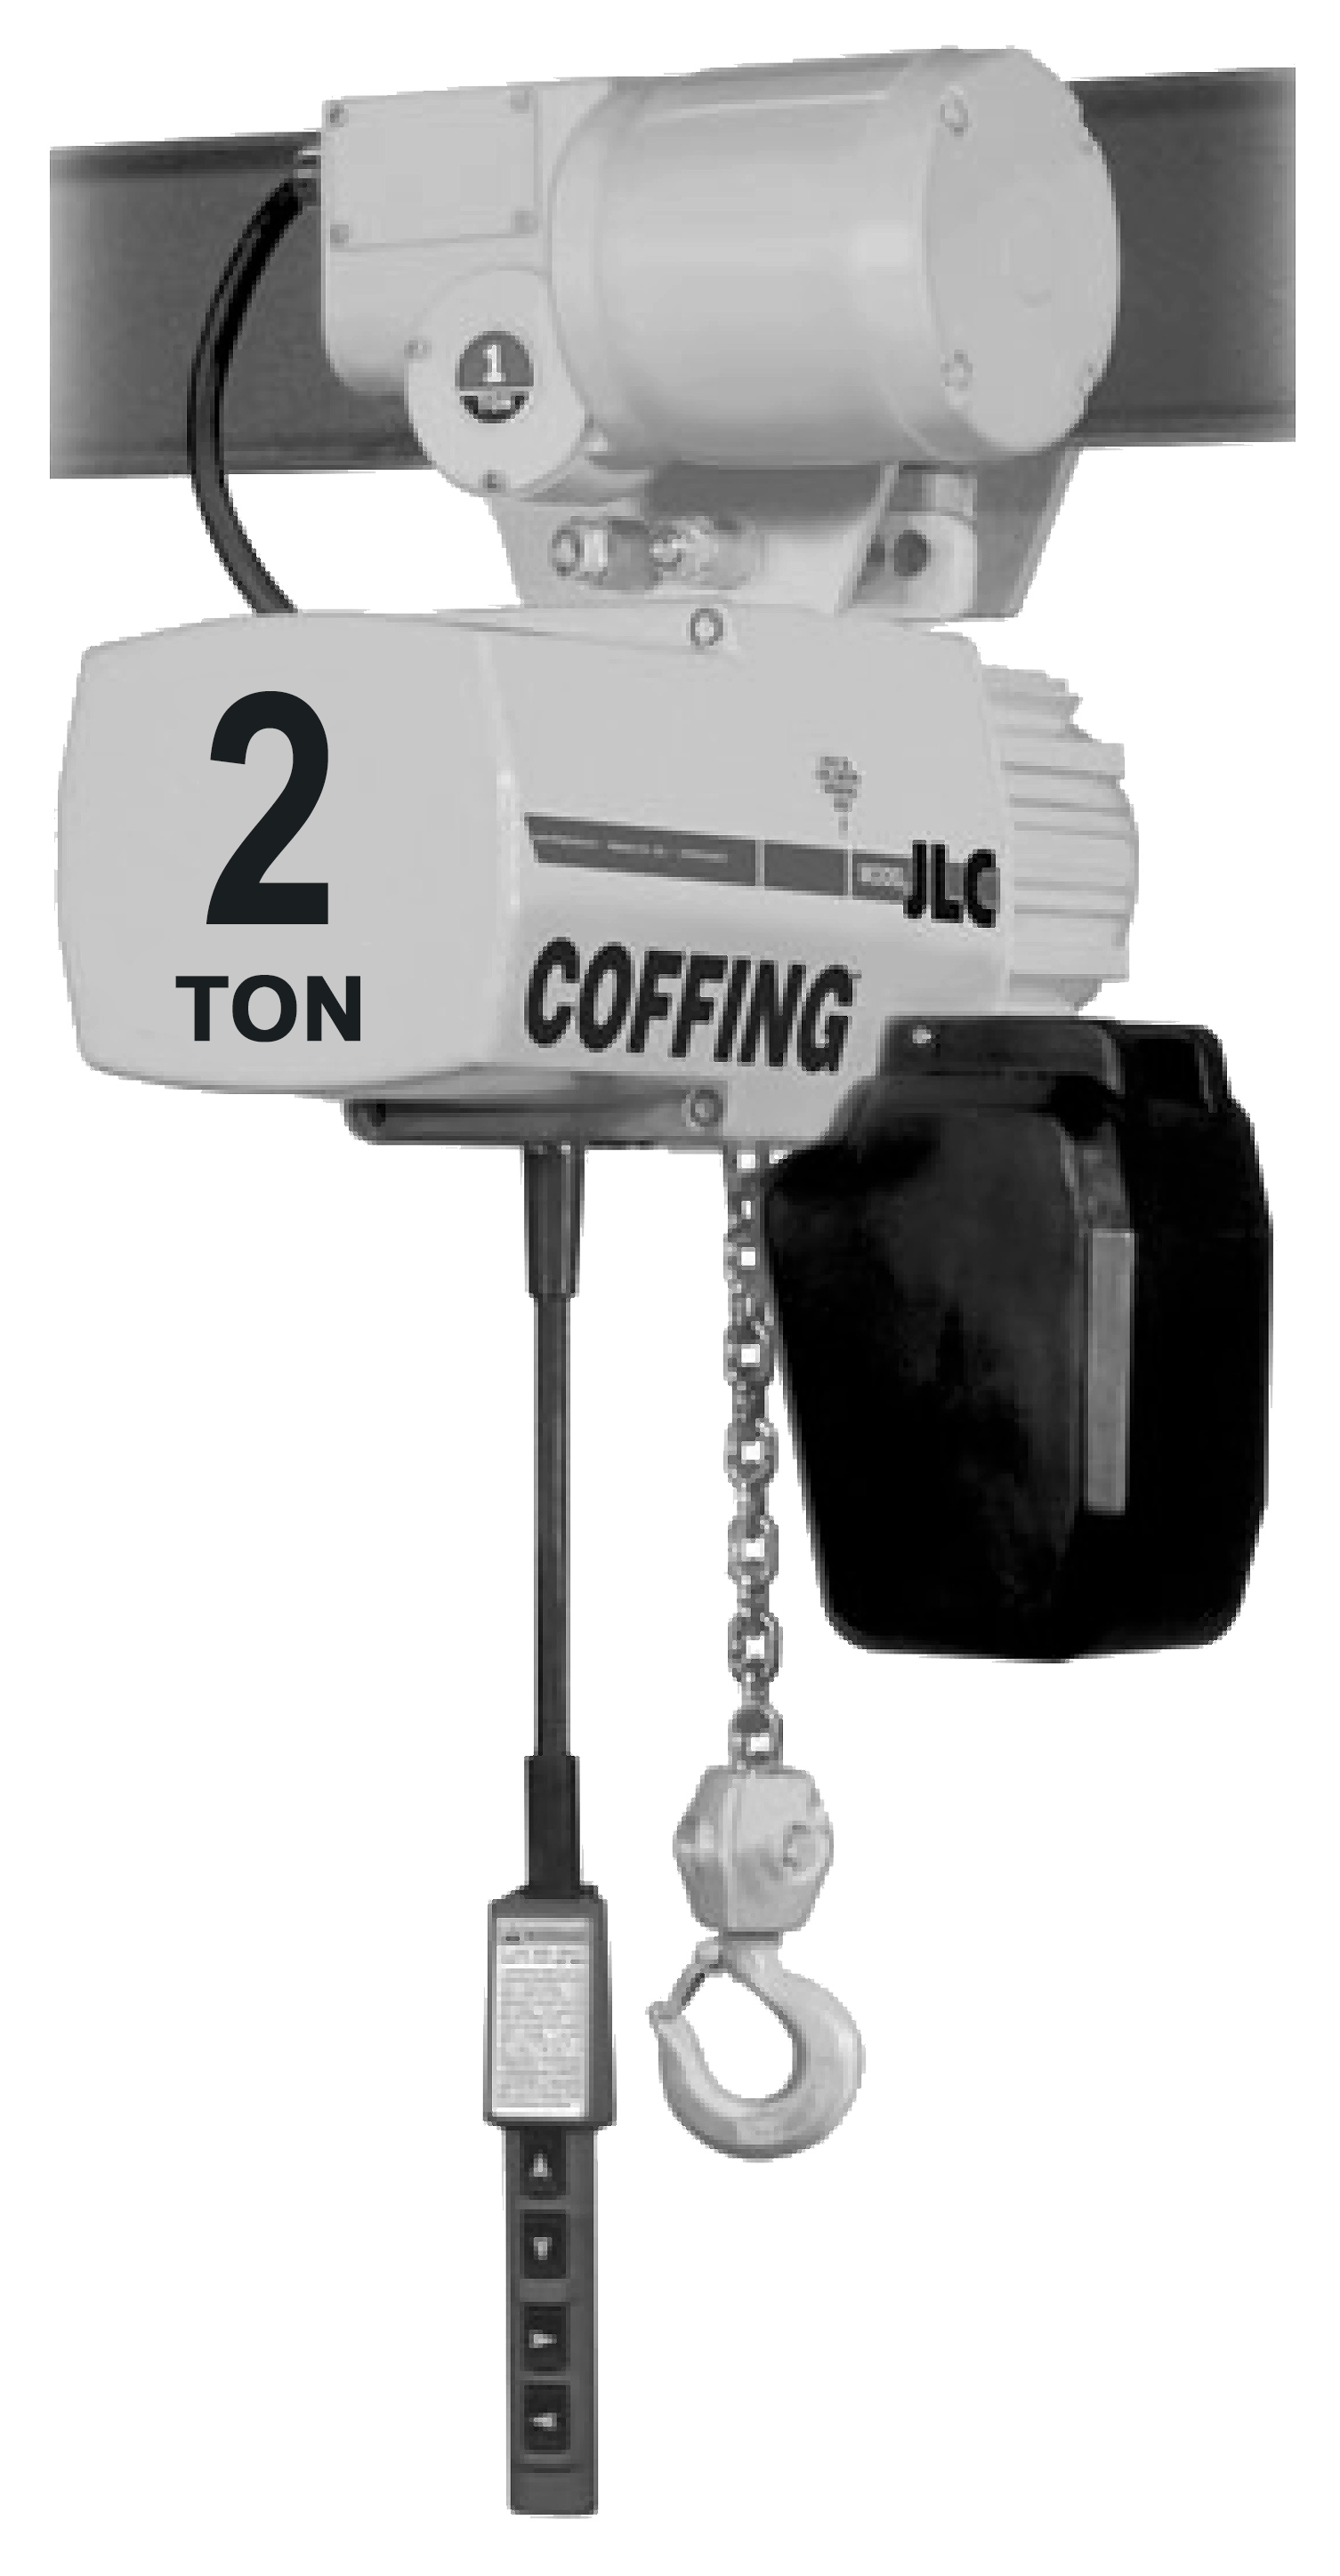 2-Ton Coffing JLC Electric Chain Hoist with Motorized Trolley